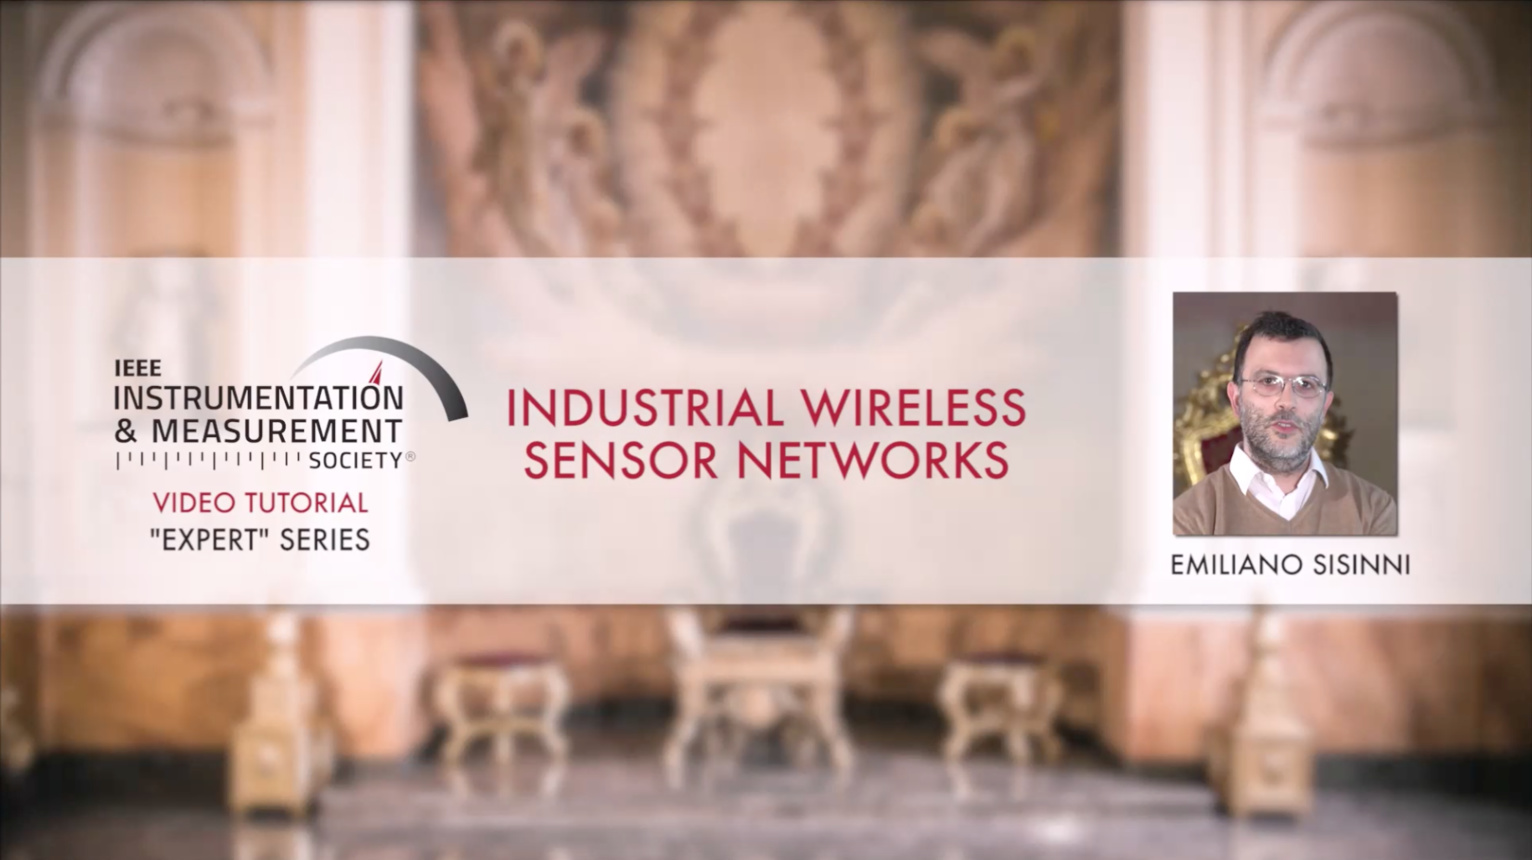 Industrial Wireless Sensor Networks: Tutorial by Emiliano Sisinni